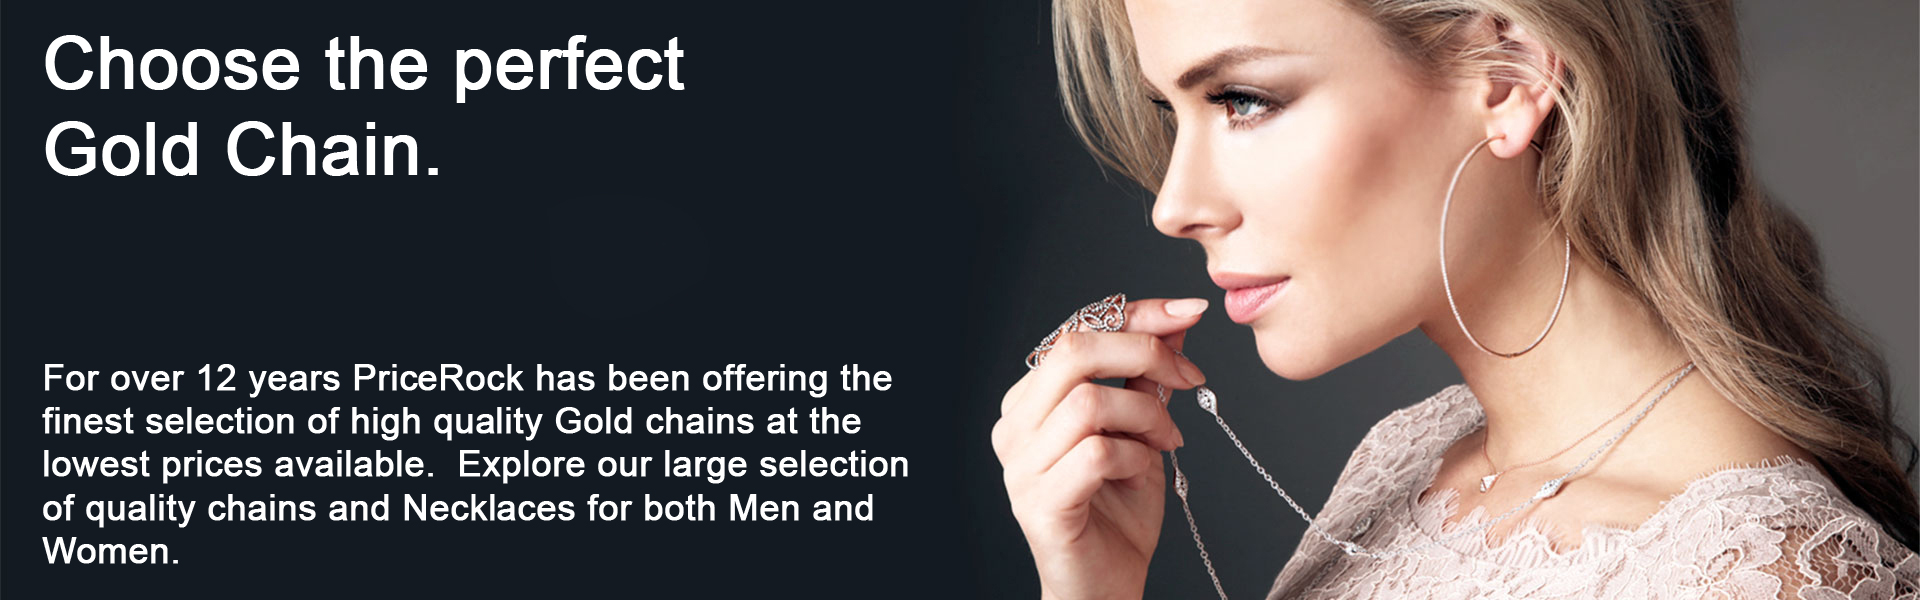 Choose the perfect Gold Chain